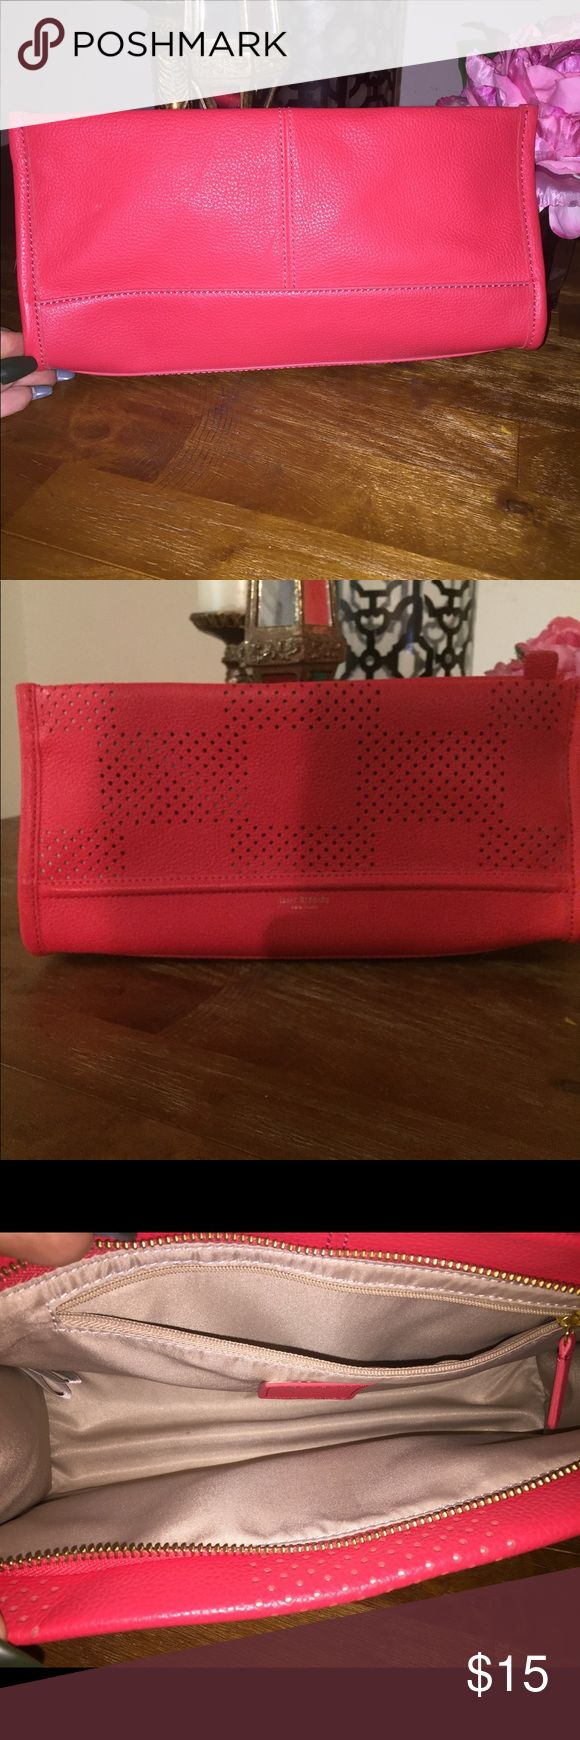 Cute Orange reddish 👛 clutch perfect for fall 🍂 Reddish Orange clutch can go good with most fall looks !  Never used Isaac Mizrahi Bags Clutches & Wristlets